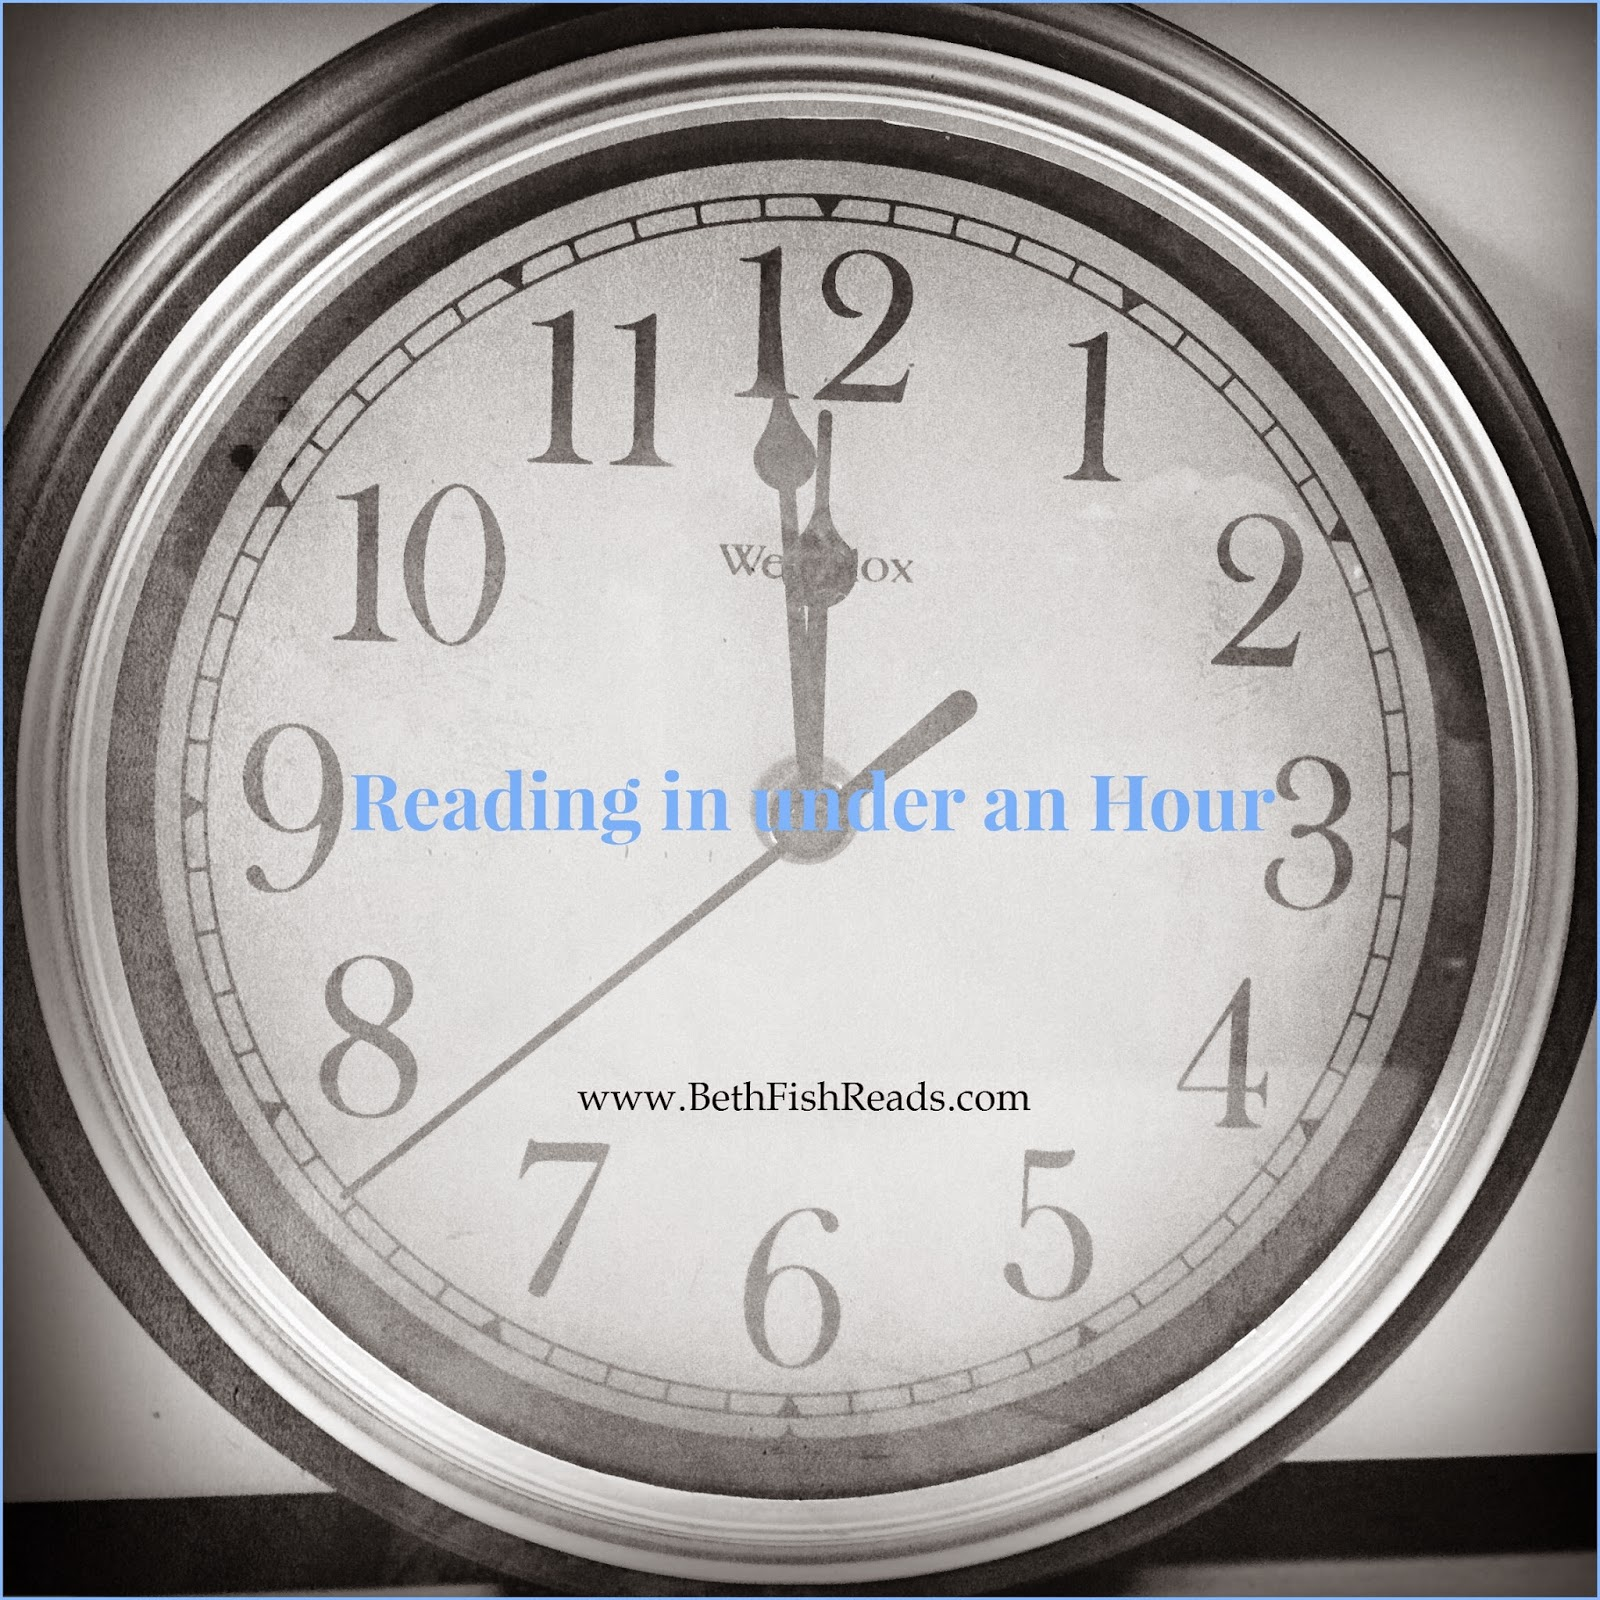 Reading in under an Hour @ www.BethFishReads.com